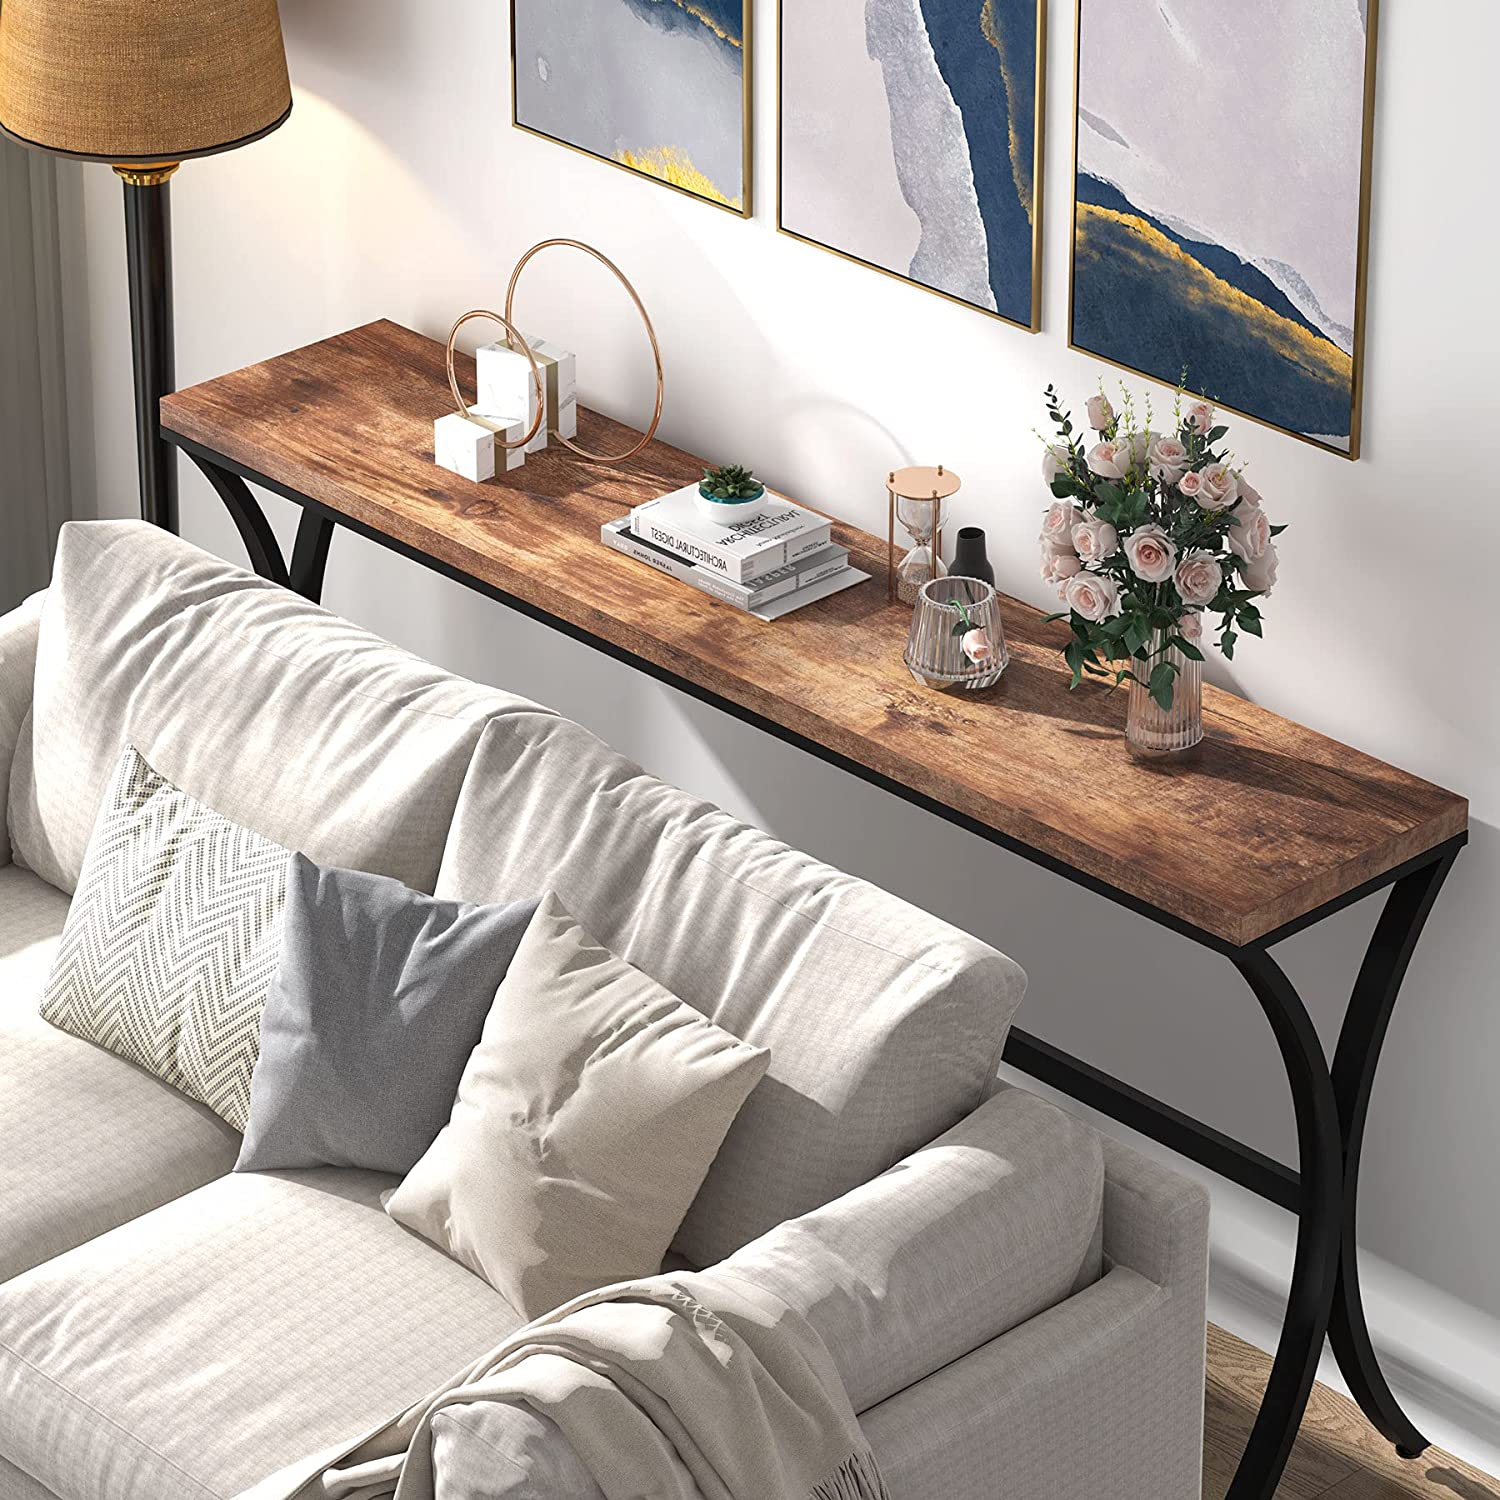 Buy Tribesigns Industrial Console Sofa Table, 20.20 inch Narrow ...